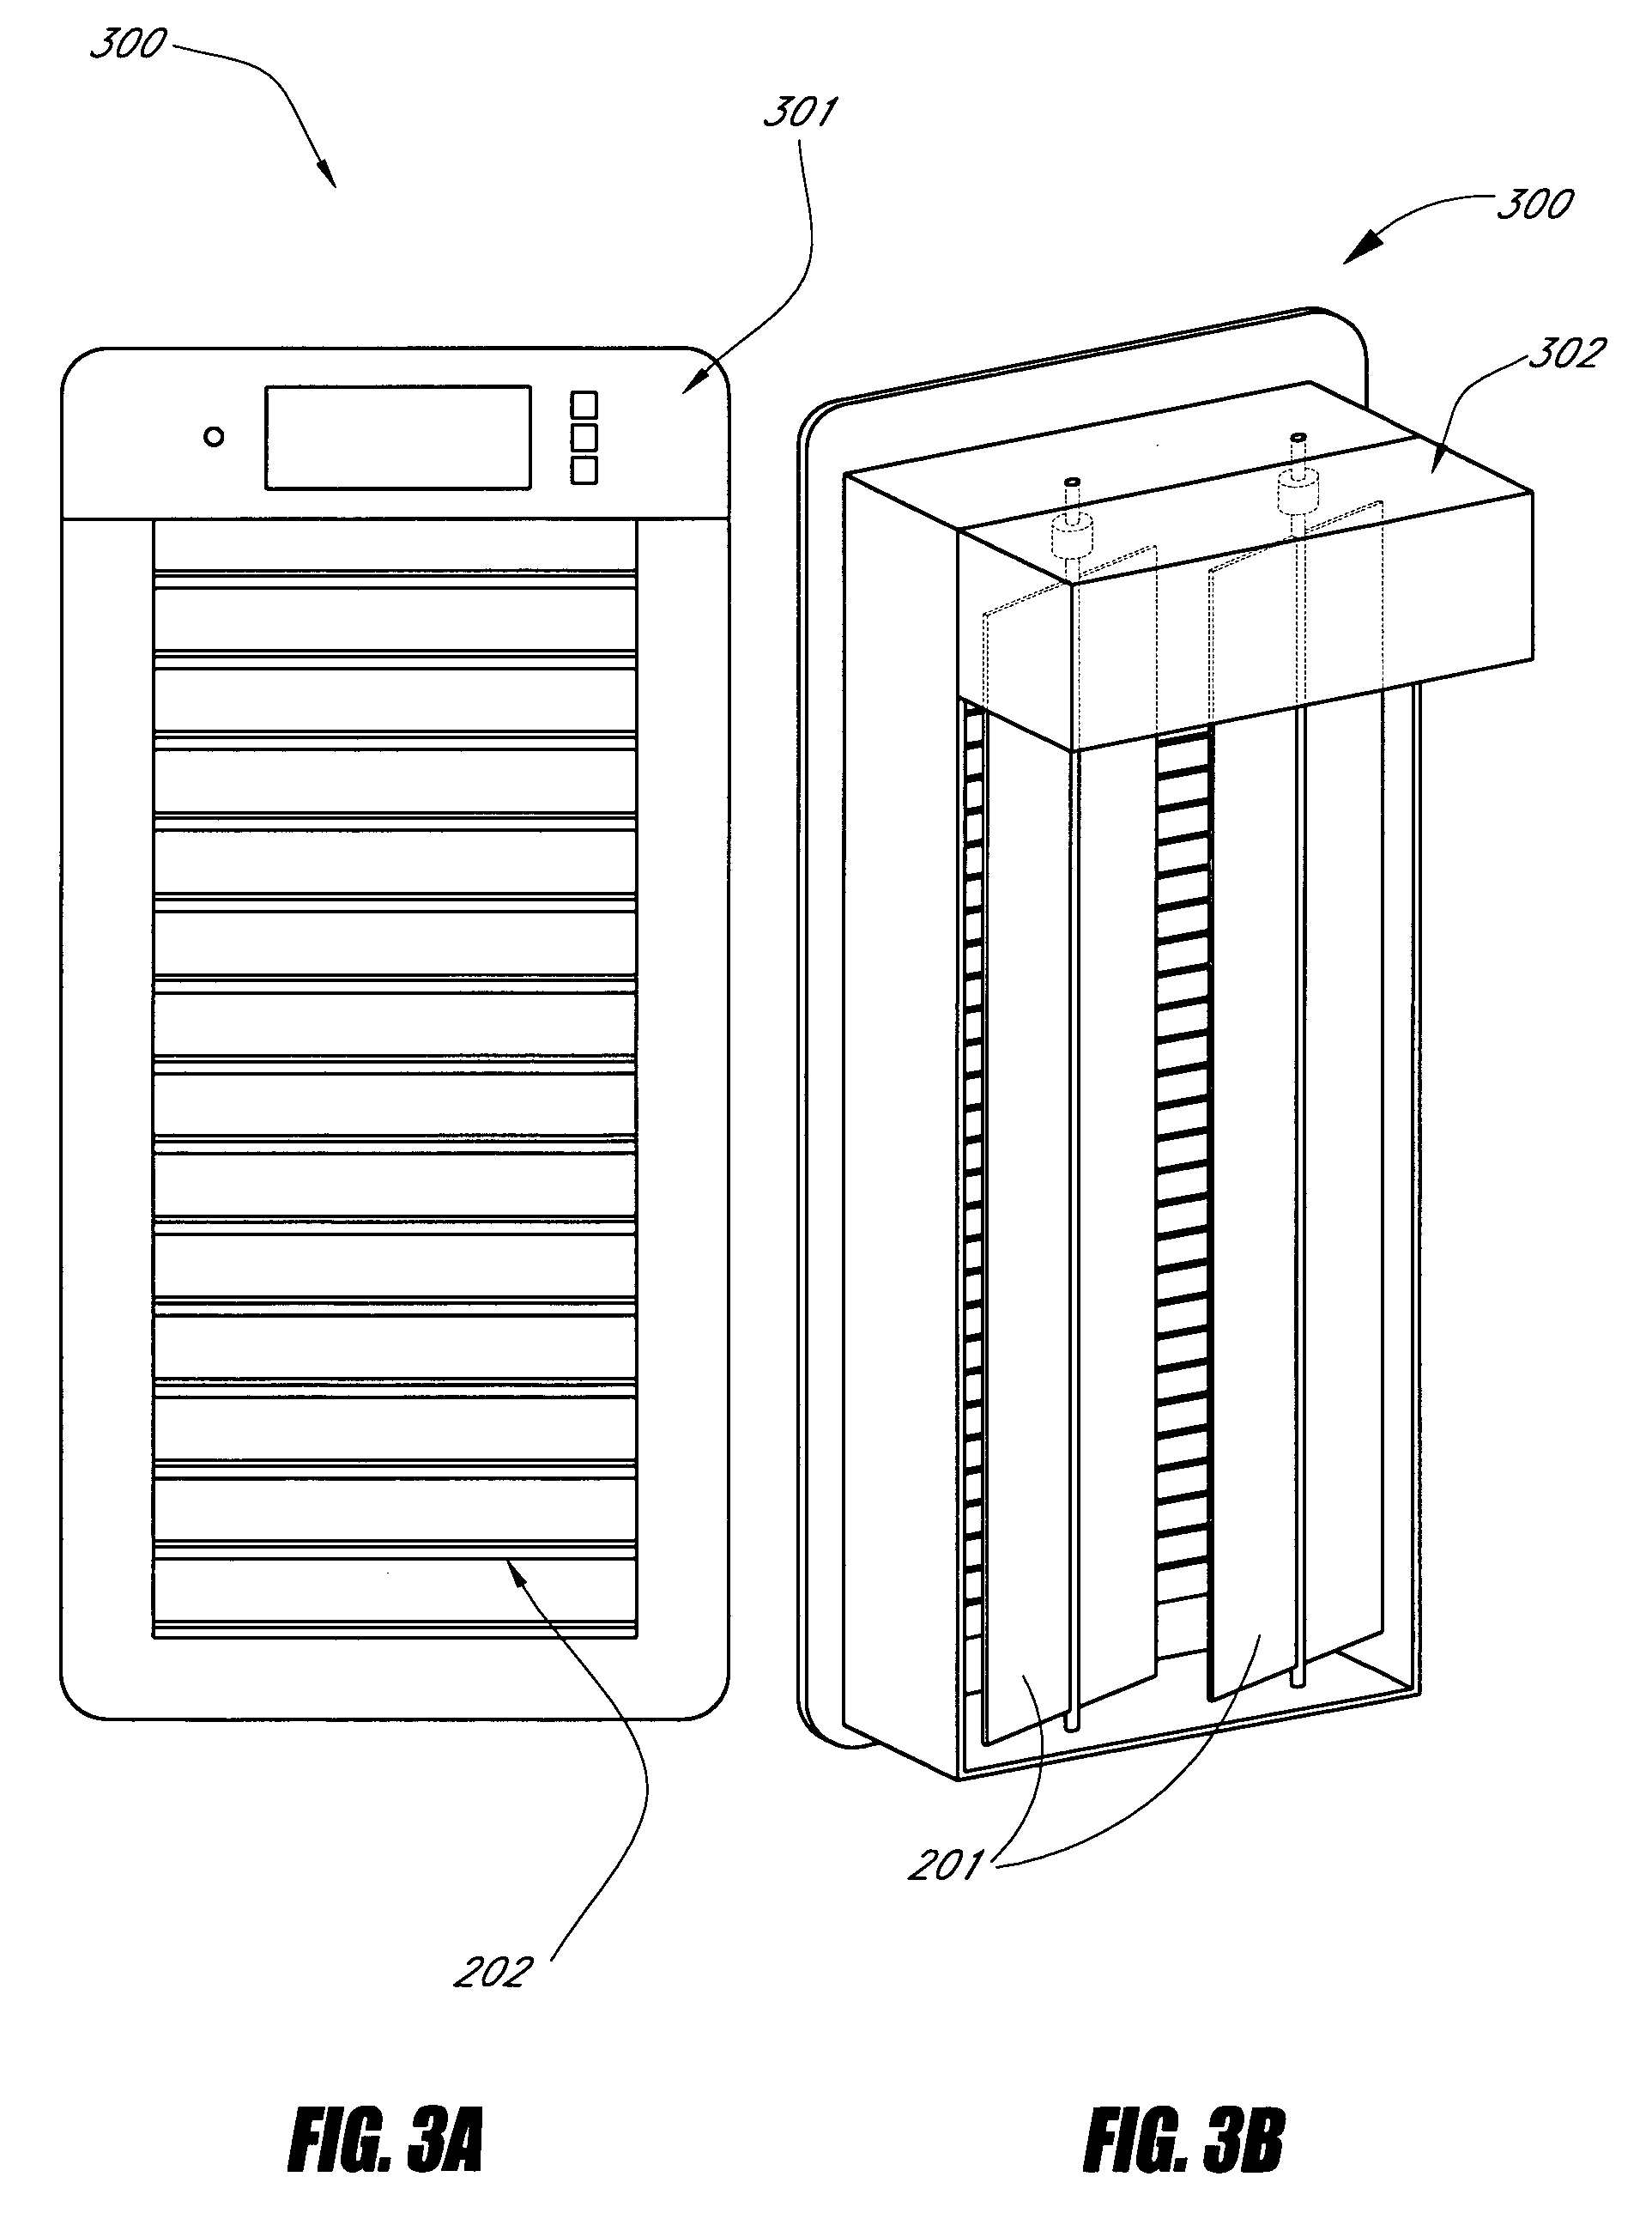 controlled register vent for zone heating and cooling   Patents #383838